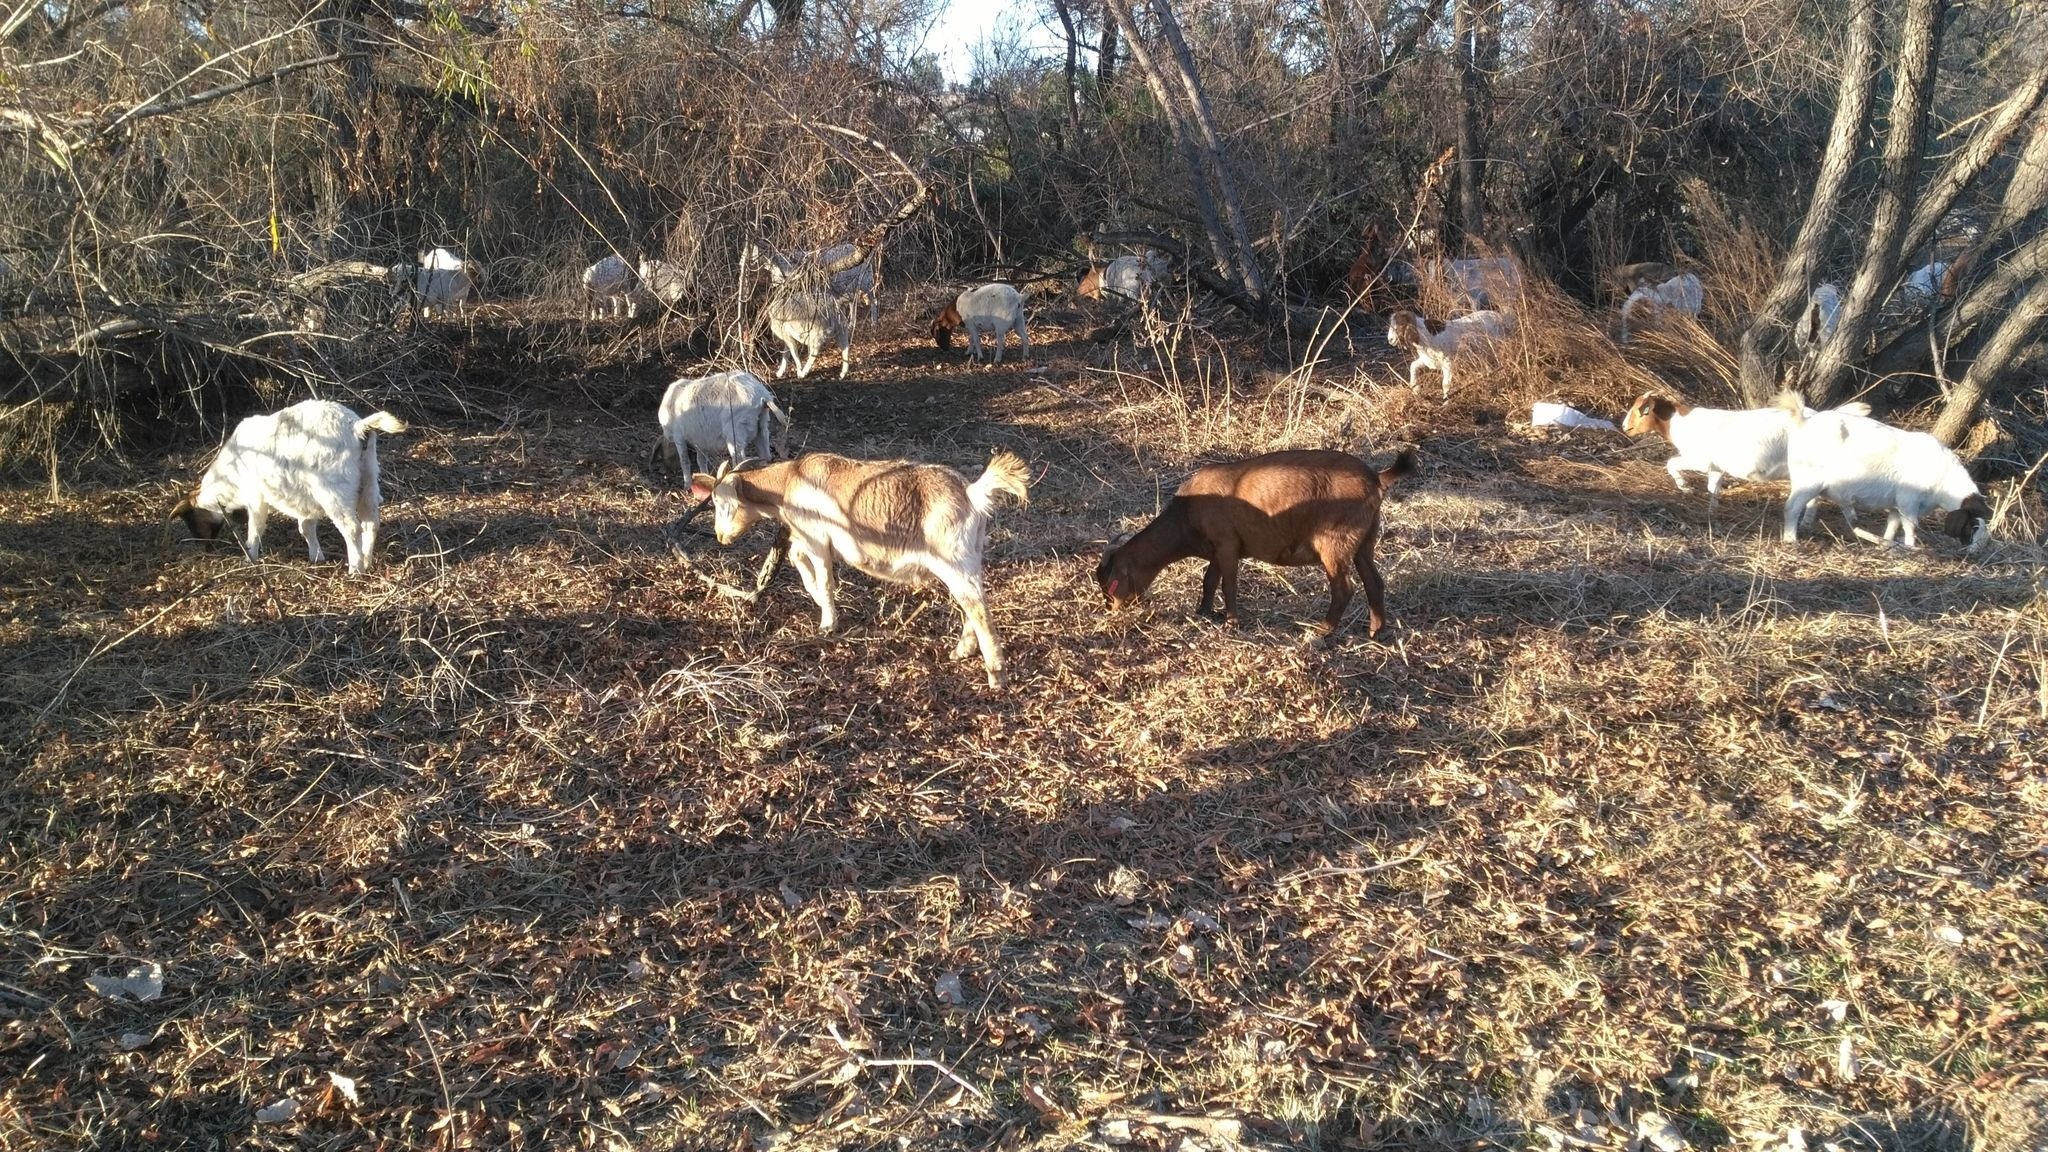 Goats at the Seventh Street bridge in Ramona are helping to clear out the Santa Maria Creek by eating overgrown plants.